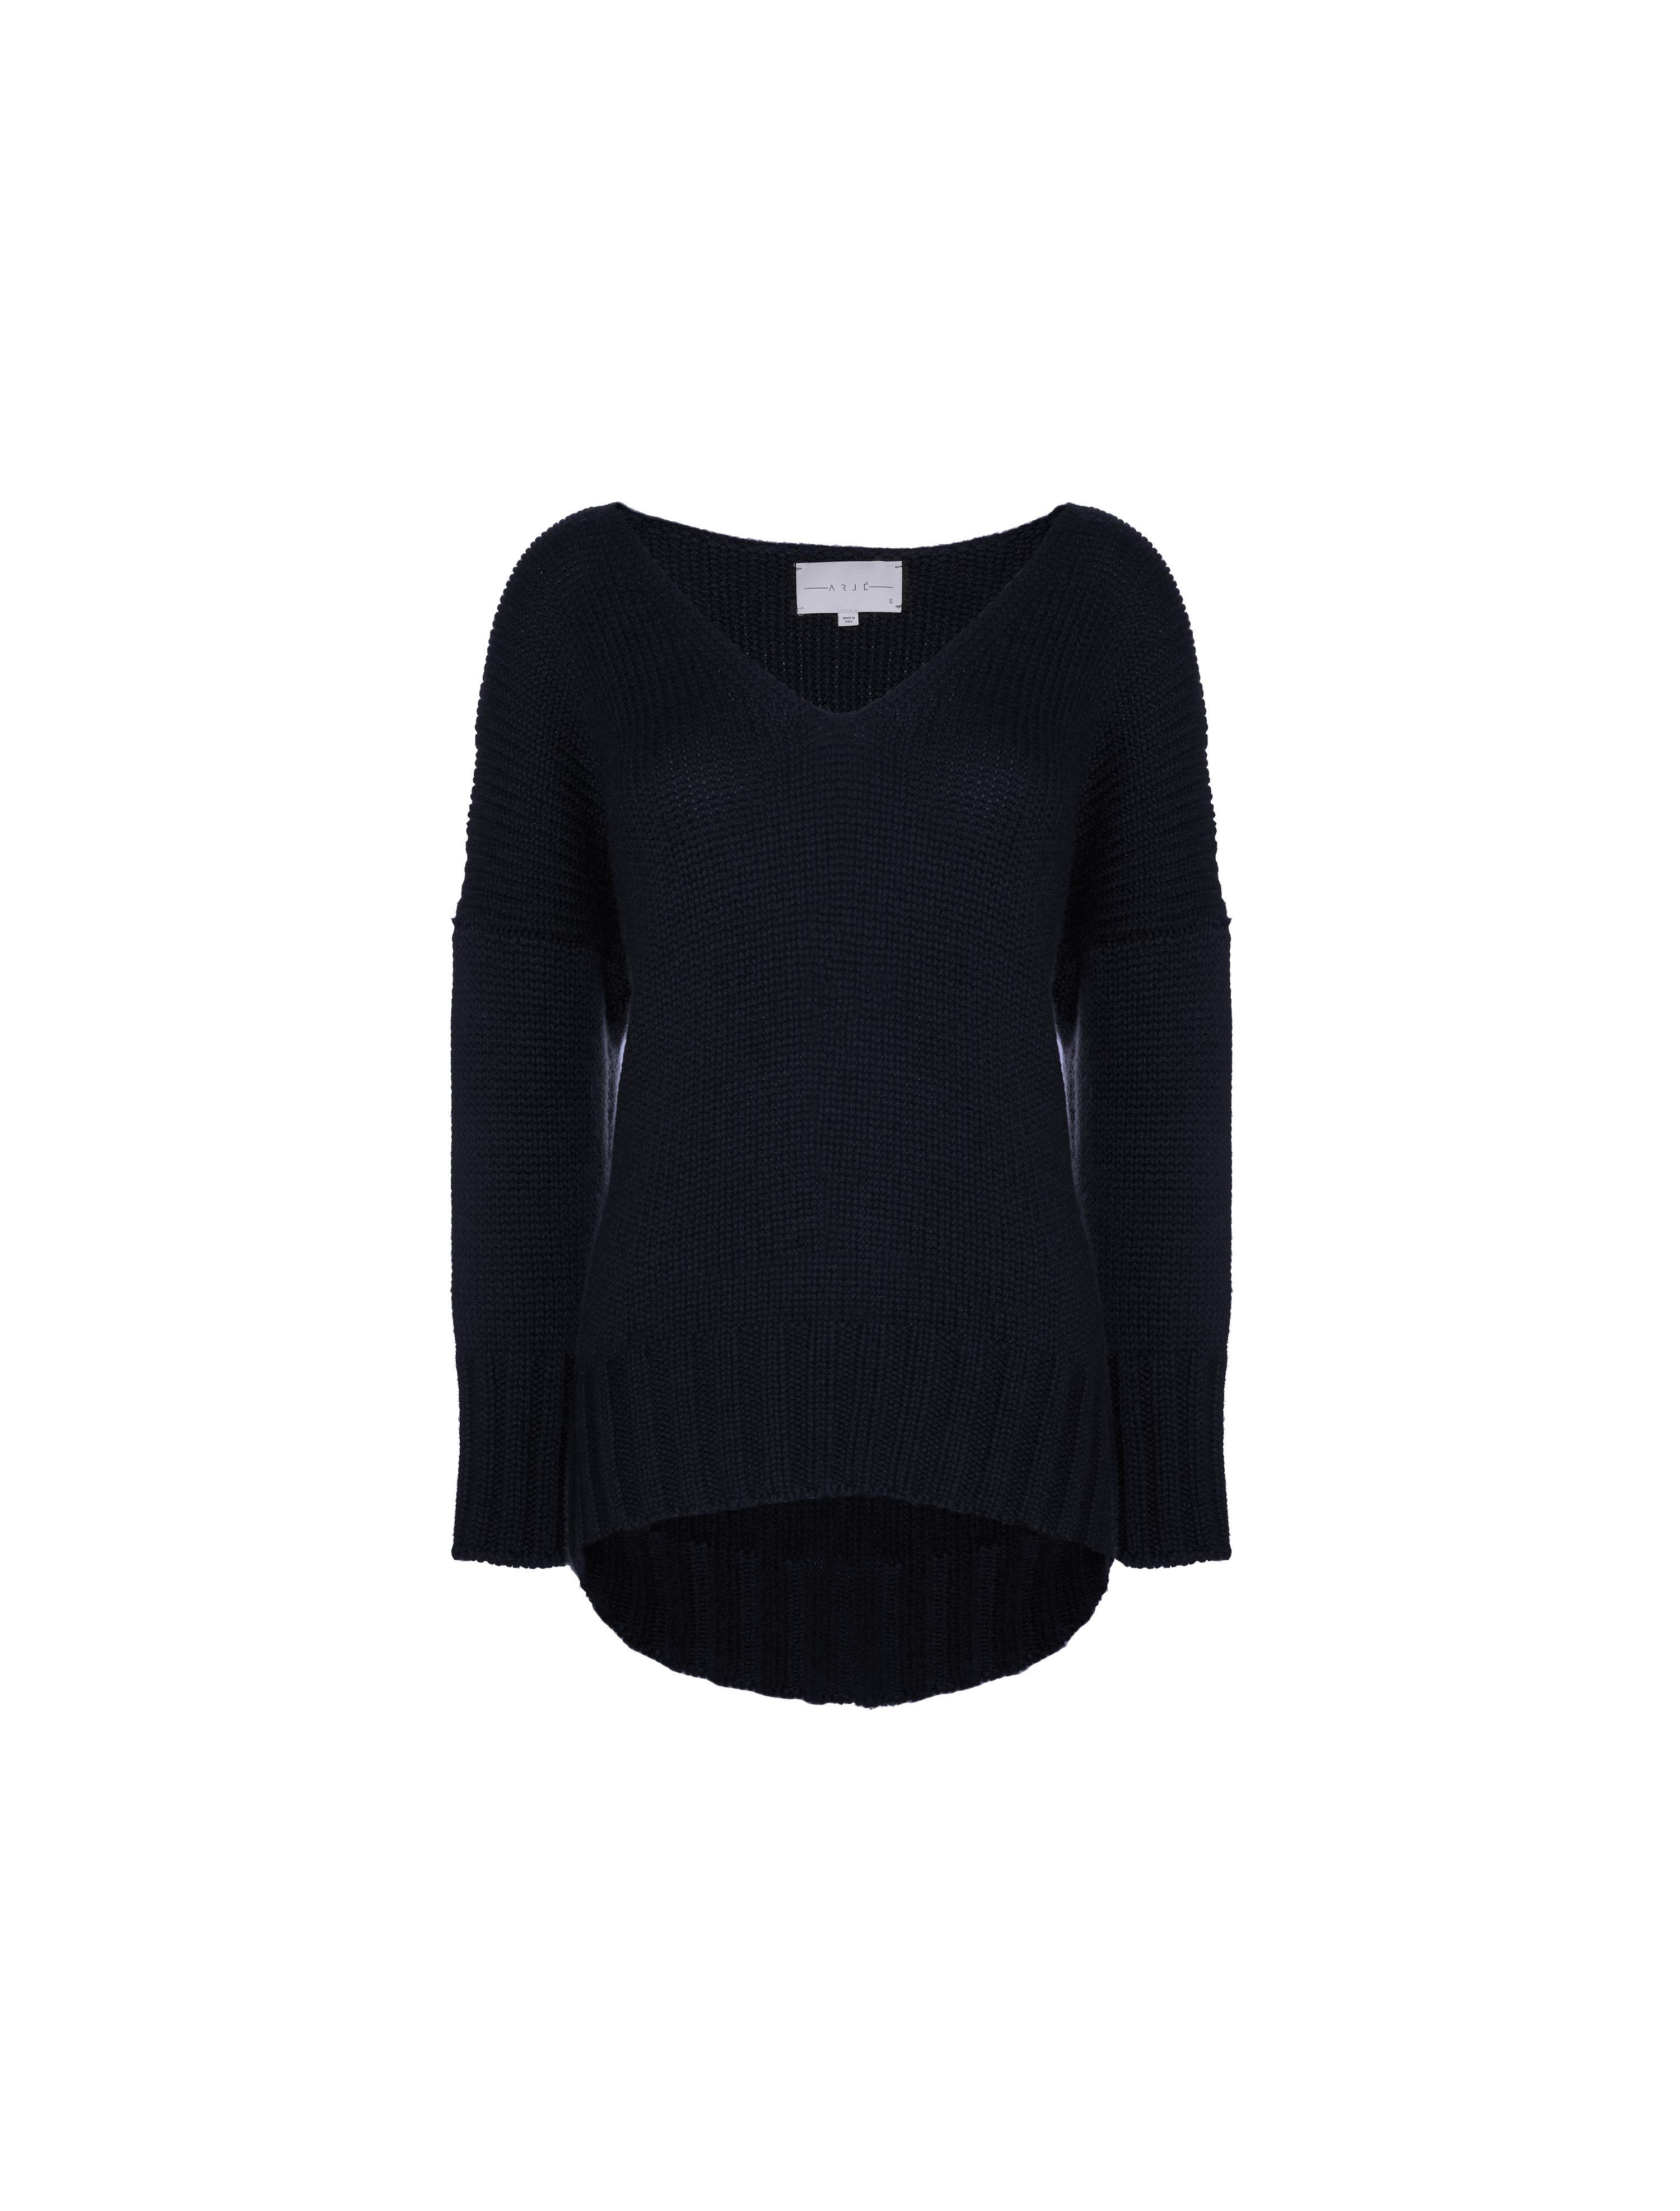 THE COURCHEVAL CASHMERE VNECK SWEATER